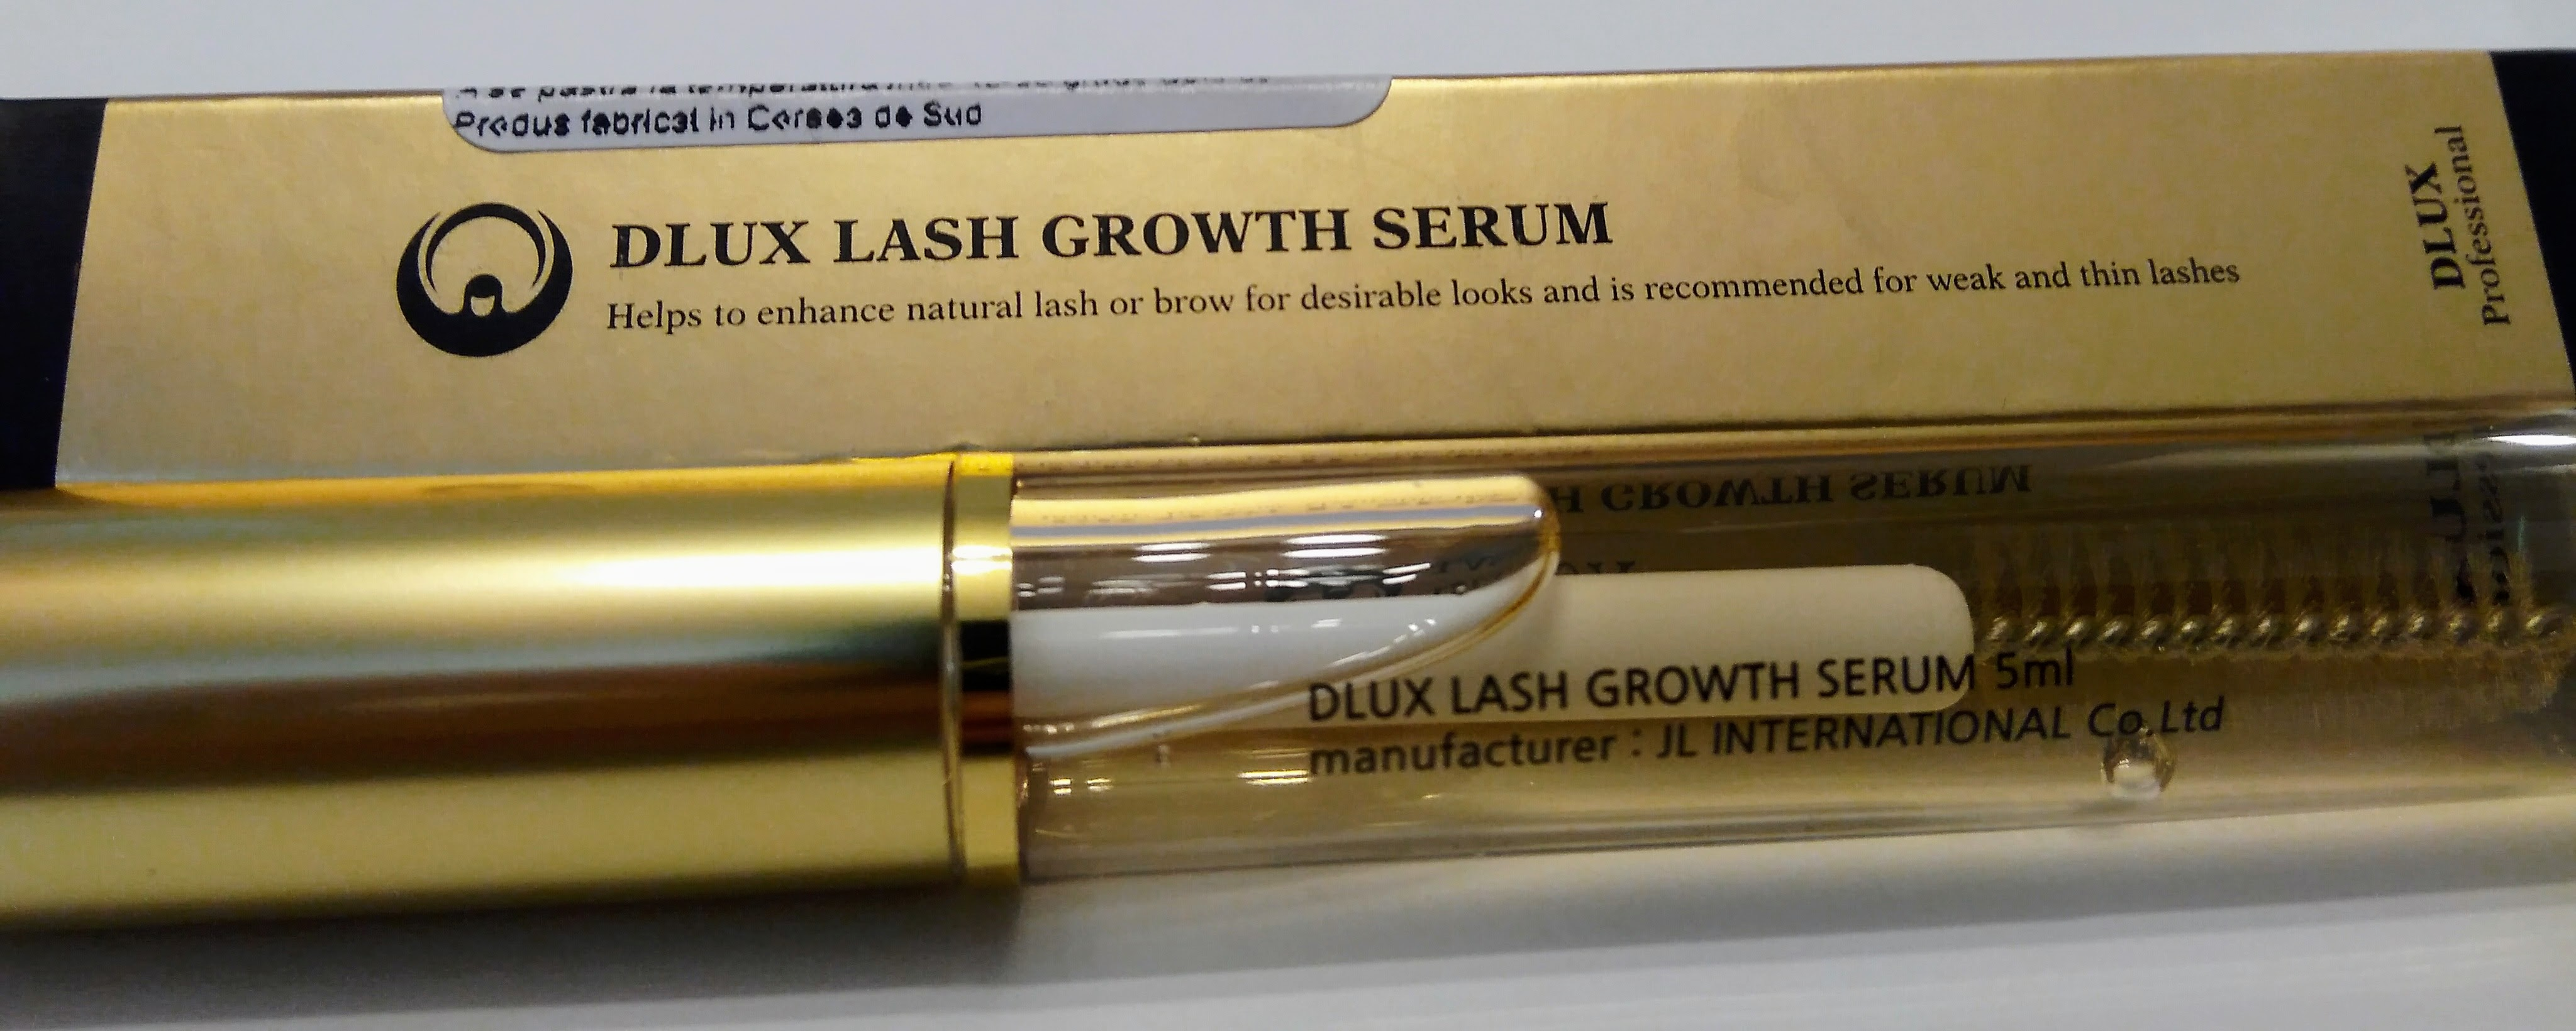 Dlux Lash Growth Serum